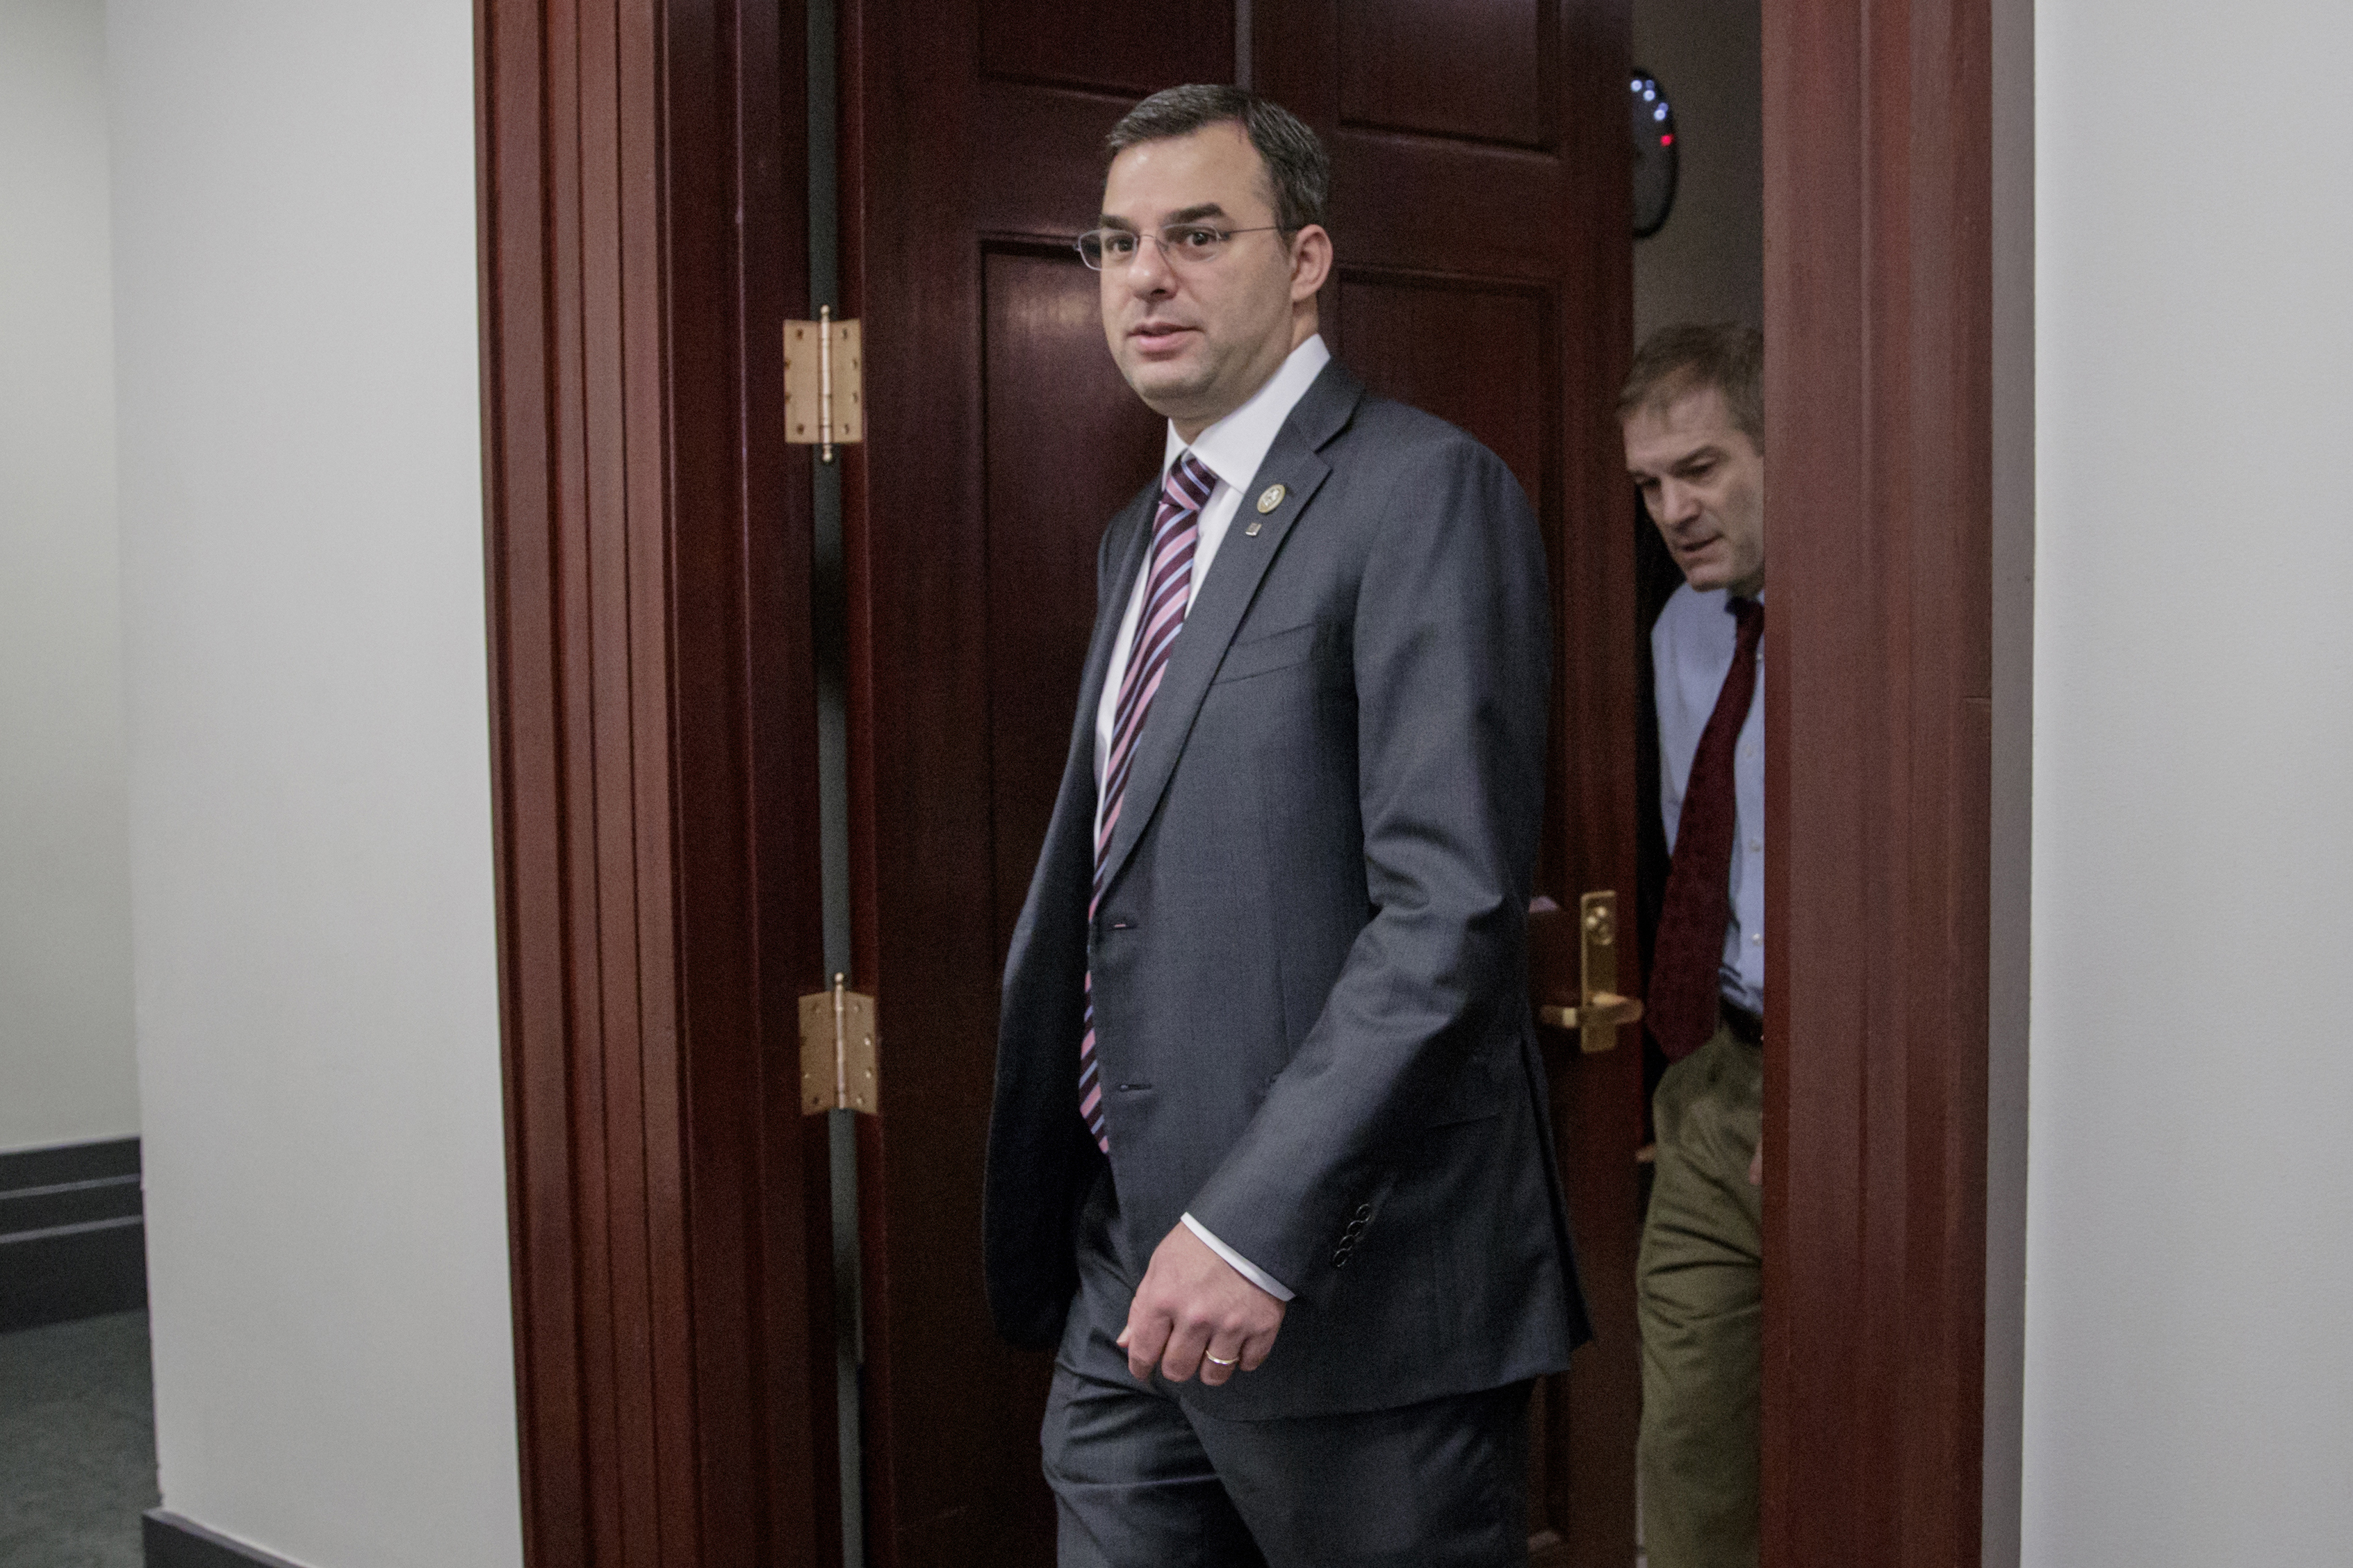 Rep. Amash sets Grand Rapids town hall, days after controversy for 'impeachment' talk